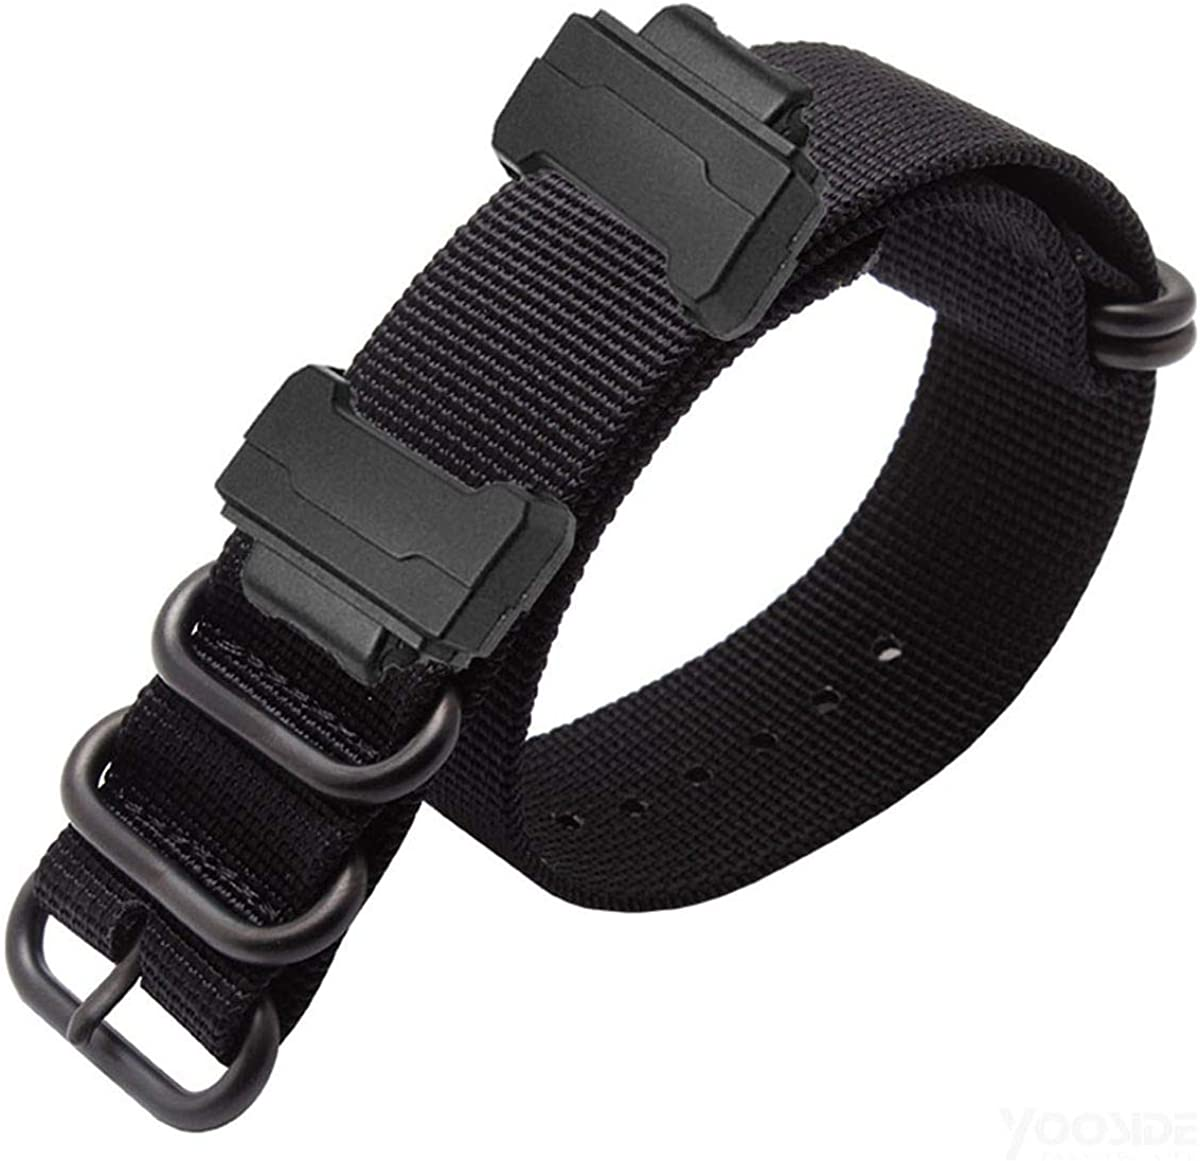 YOOSIDE NATO Nylon Buckle Watch Band for Casio G-SHOCK GW-DW5600(Black): Clothing